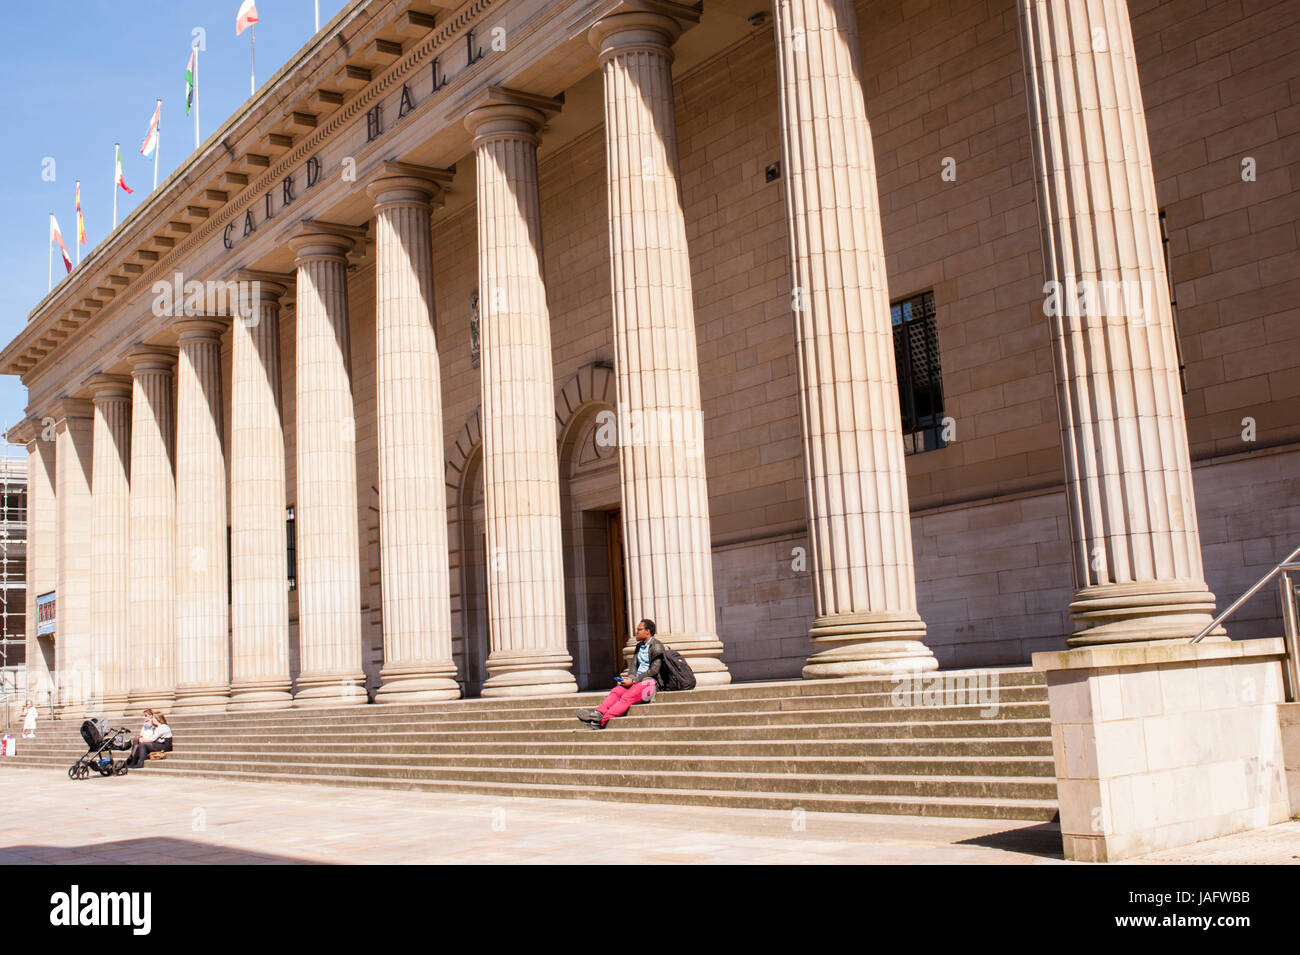 Dundee city square and The Caird Hall. Dundee, Scotland.Situated on the north bank of Firth of Tay Dundee is the - Stock Image